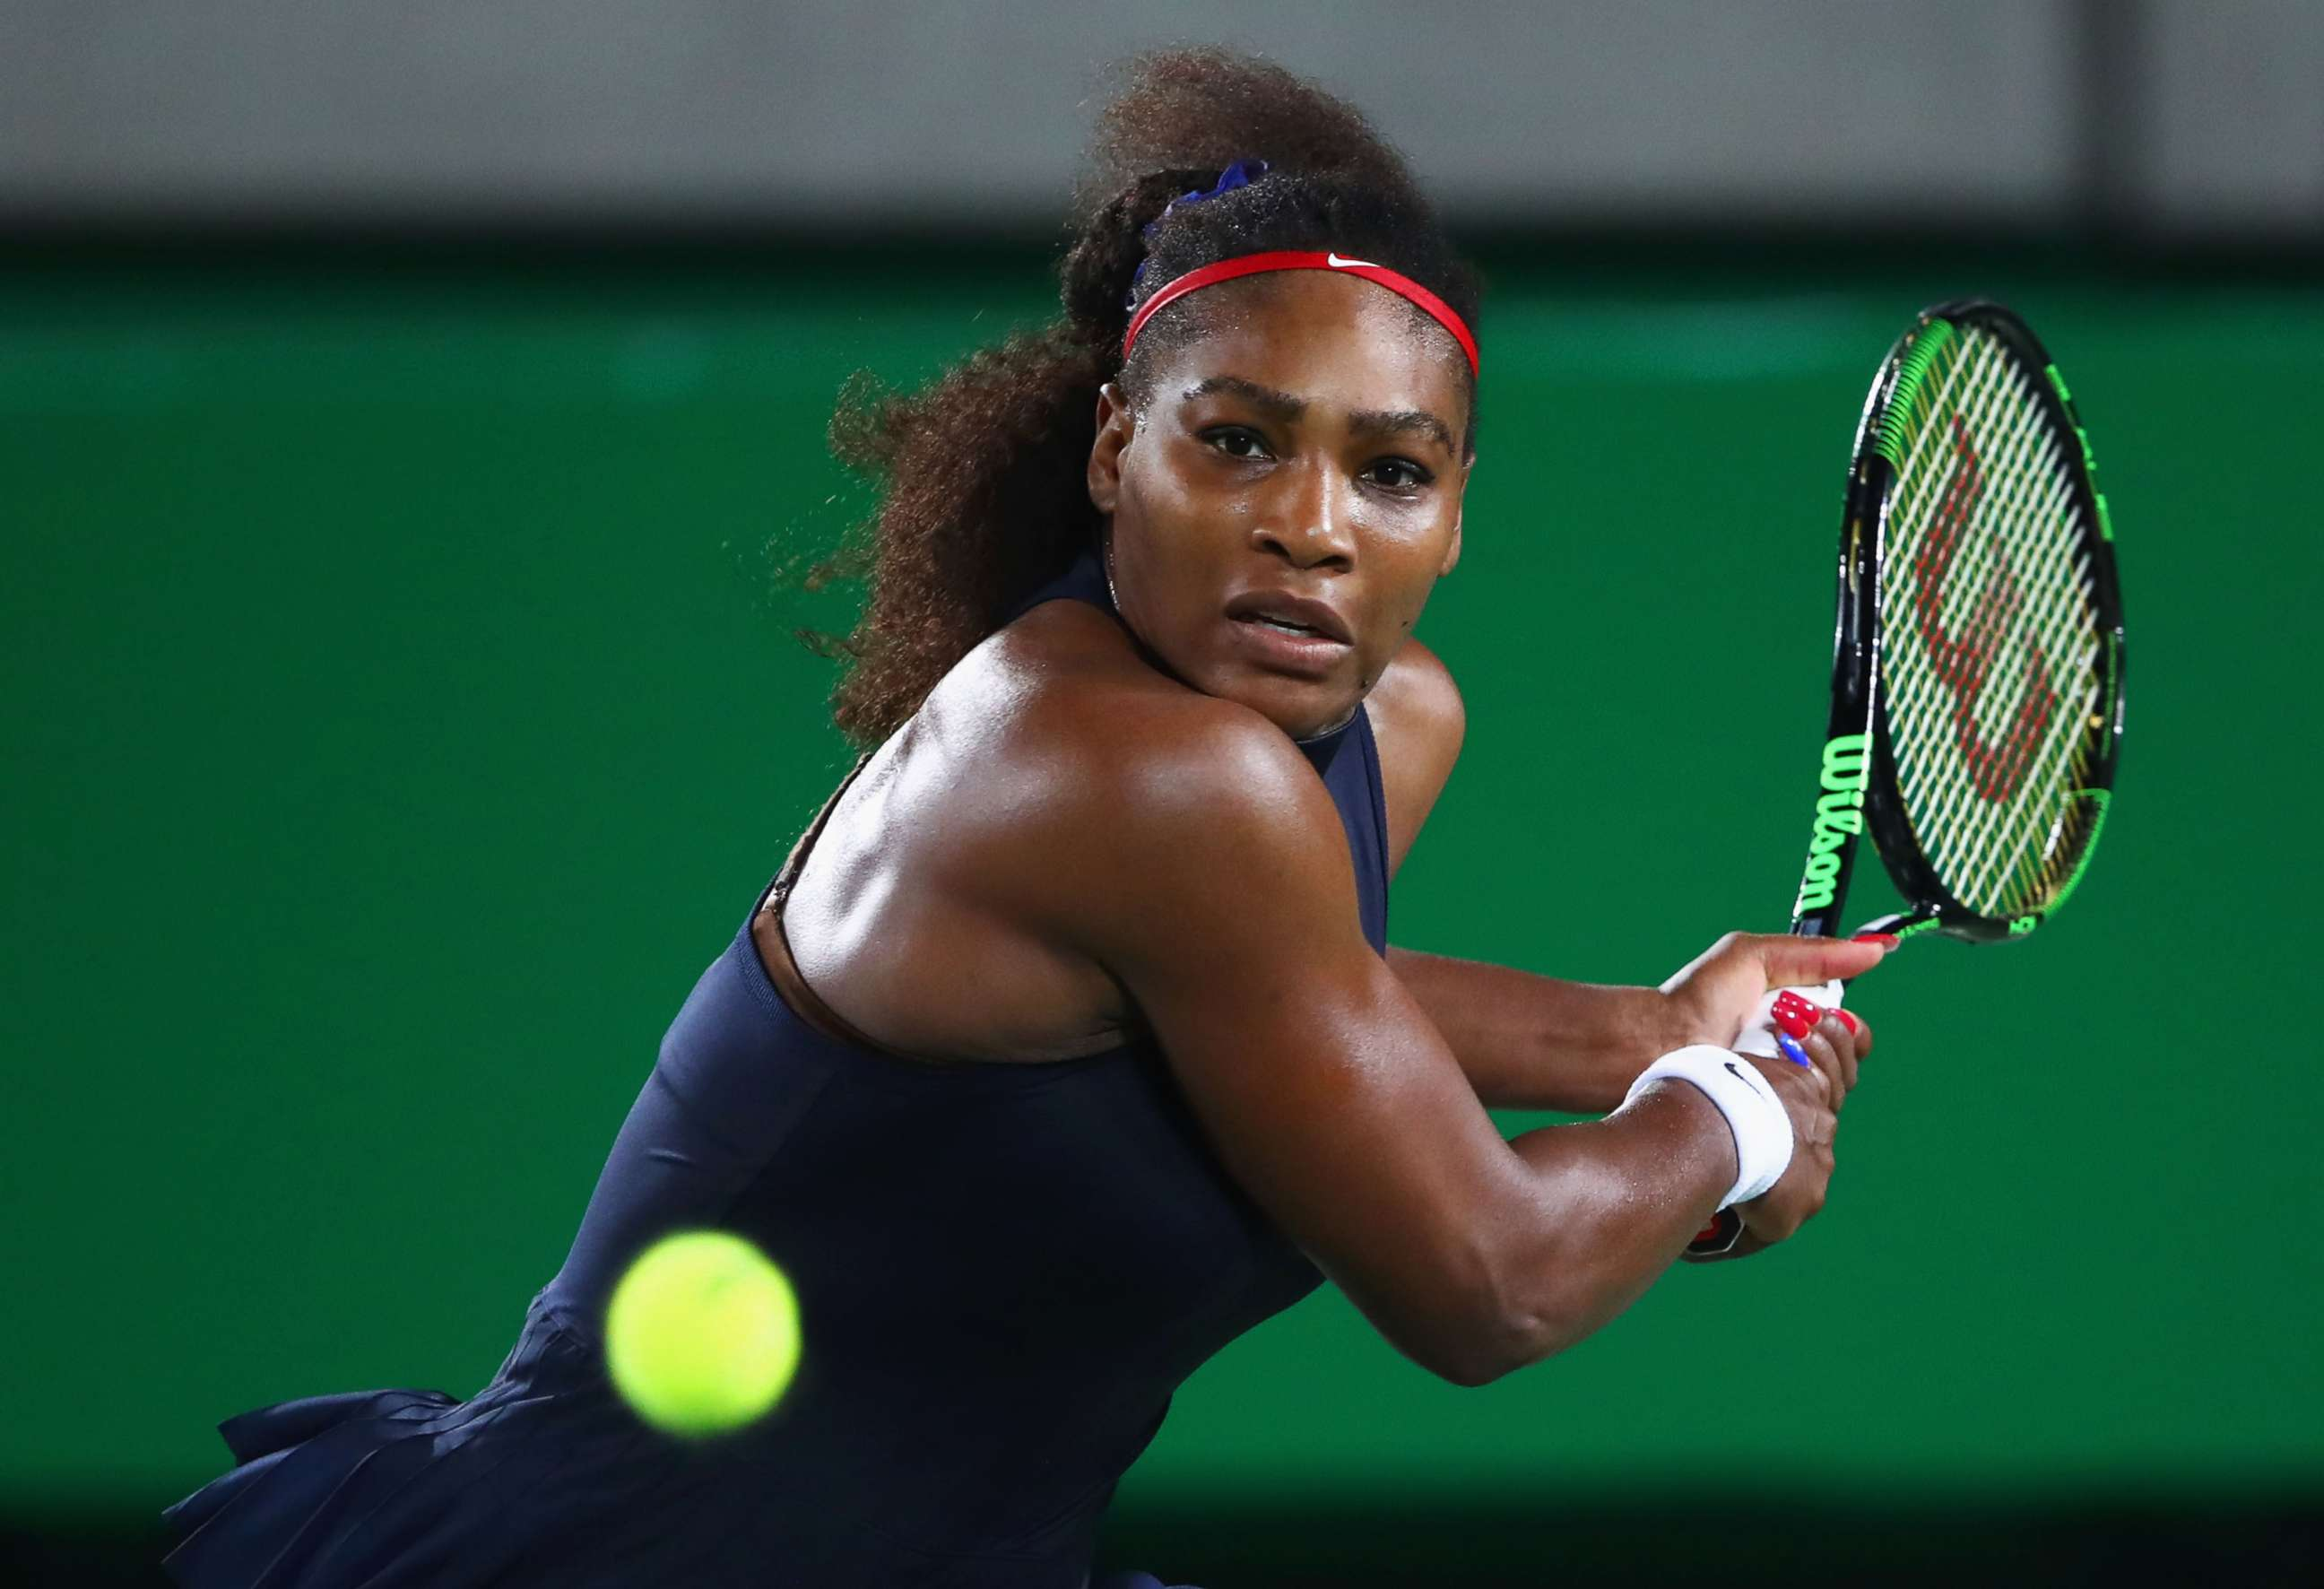 Serena Williams Videos at ABC News Video Archive at abcnews